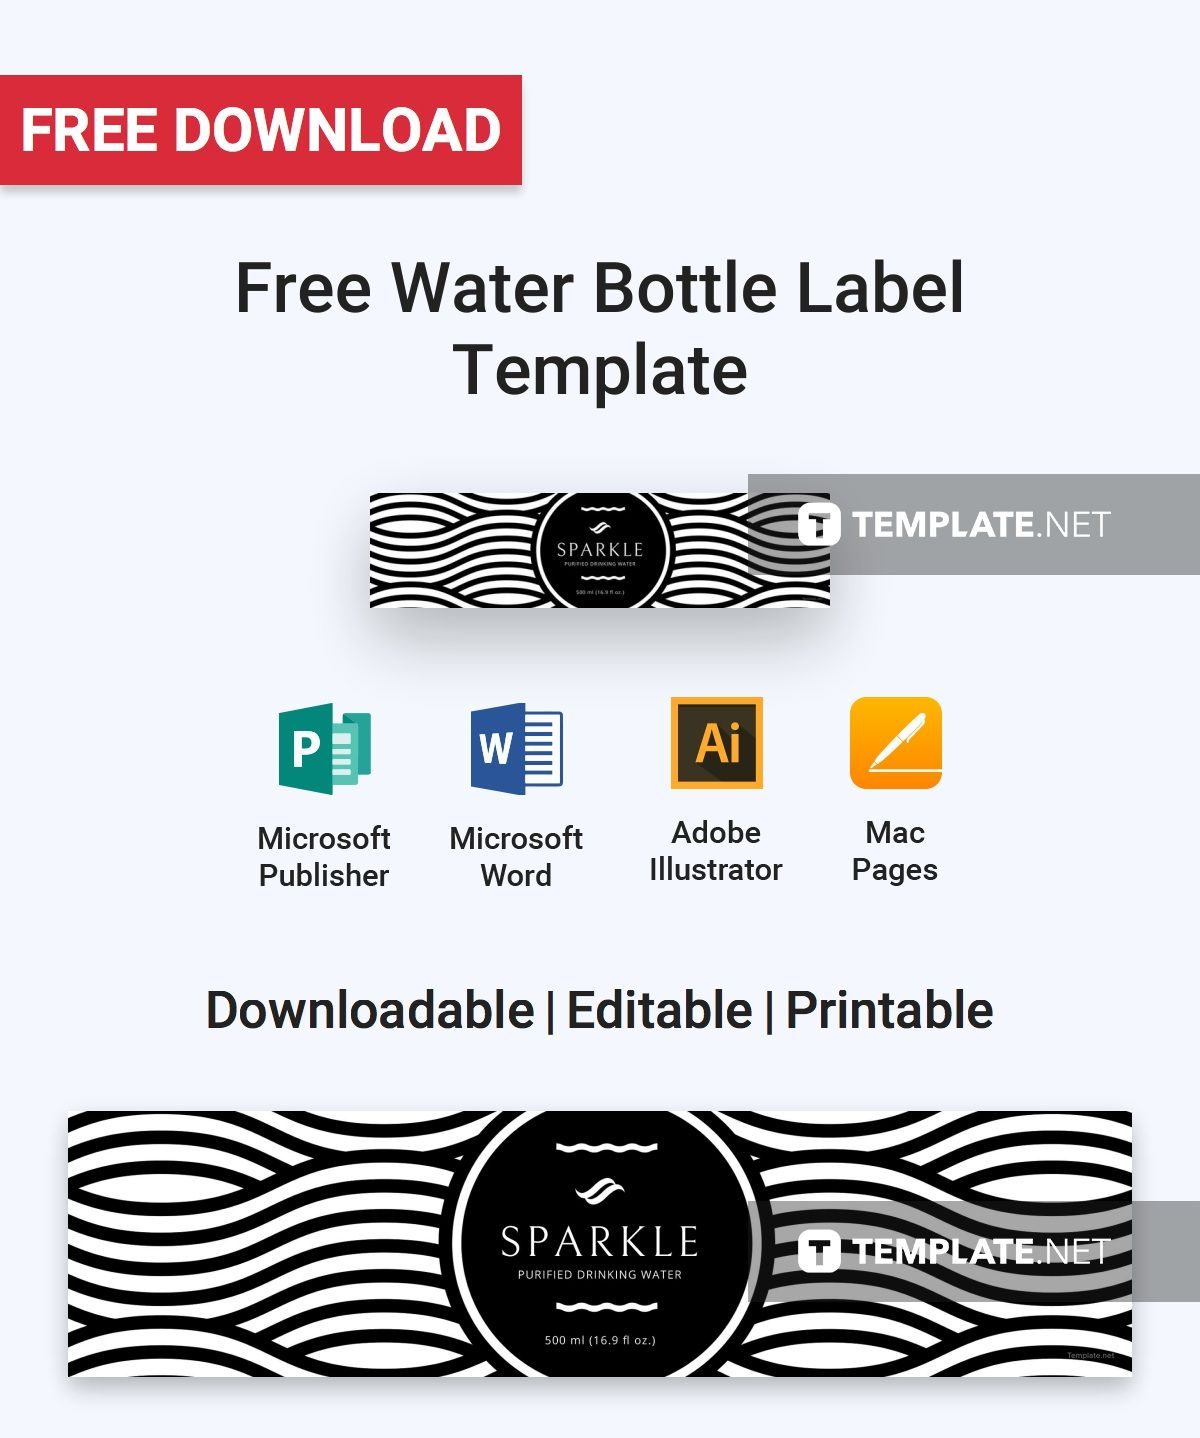 Free Download Label Templates Microsoft Word Free Water Bottle Label  Label Templates Water Bottle Labels And .